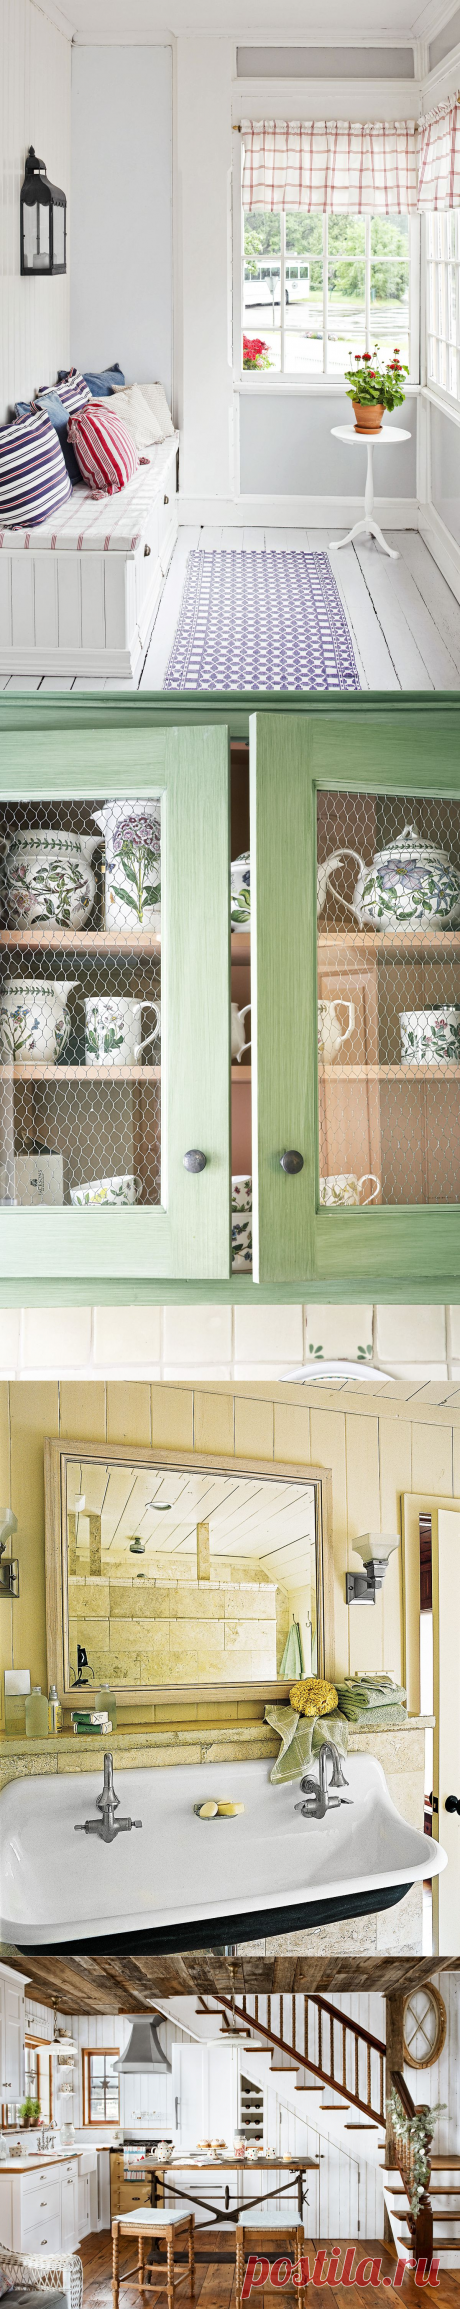 How to Design a Cozy Cottage-Style Interior - This Old House